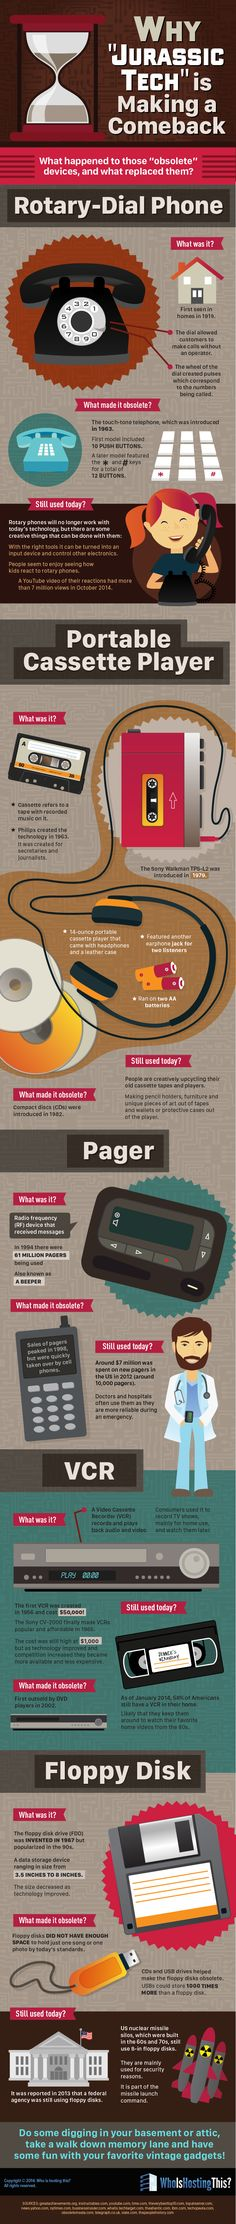 "Why ""Jurassic Tech"" is Making a Comeback #infographic #Technology"